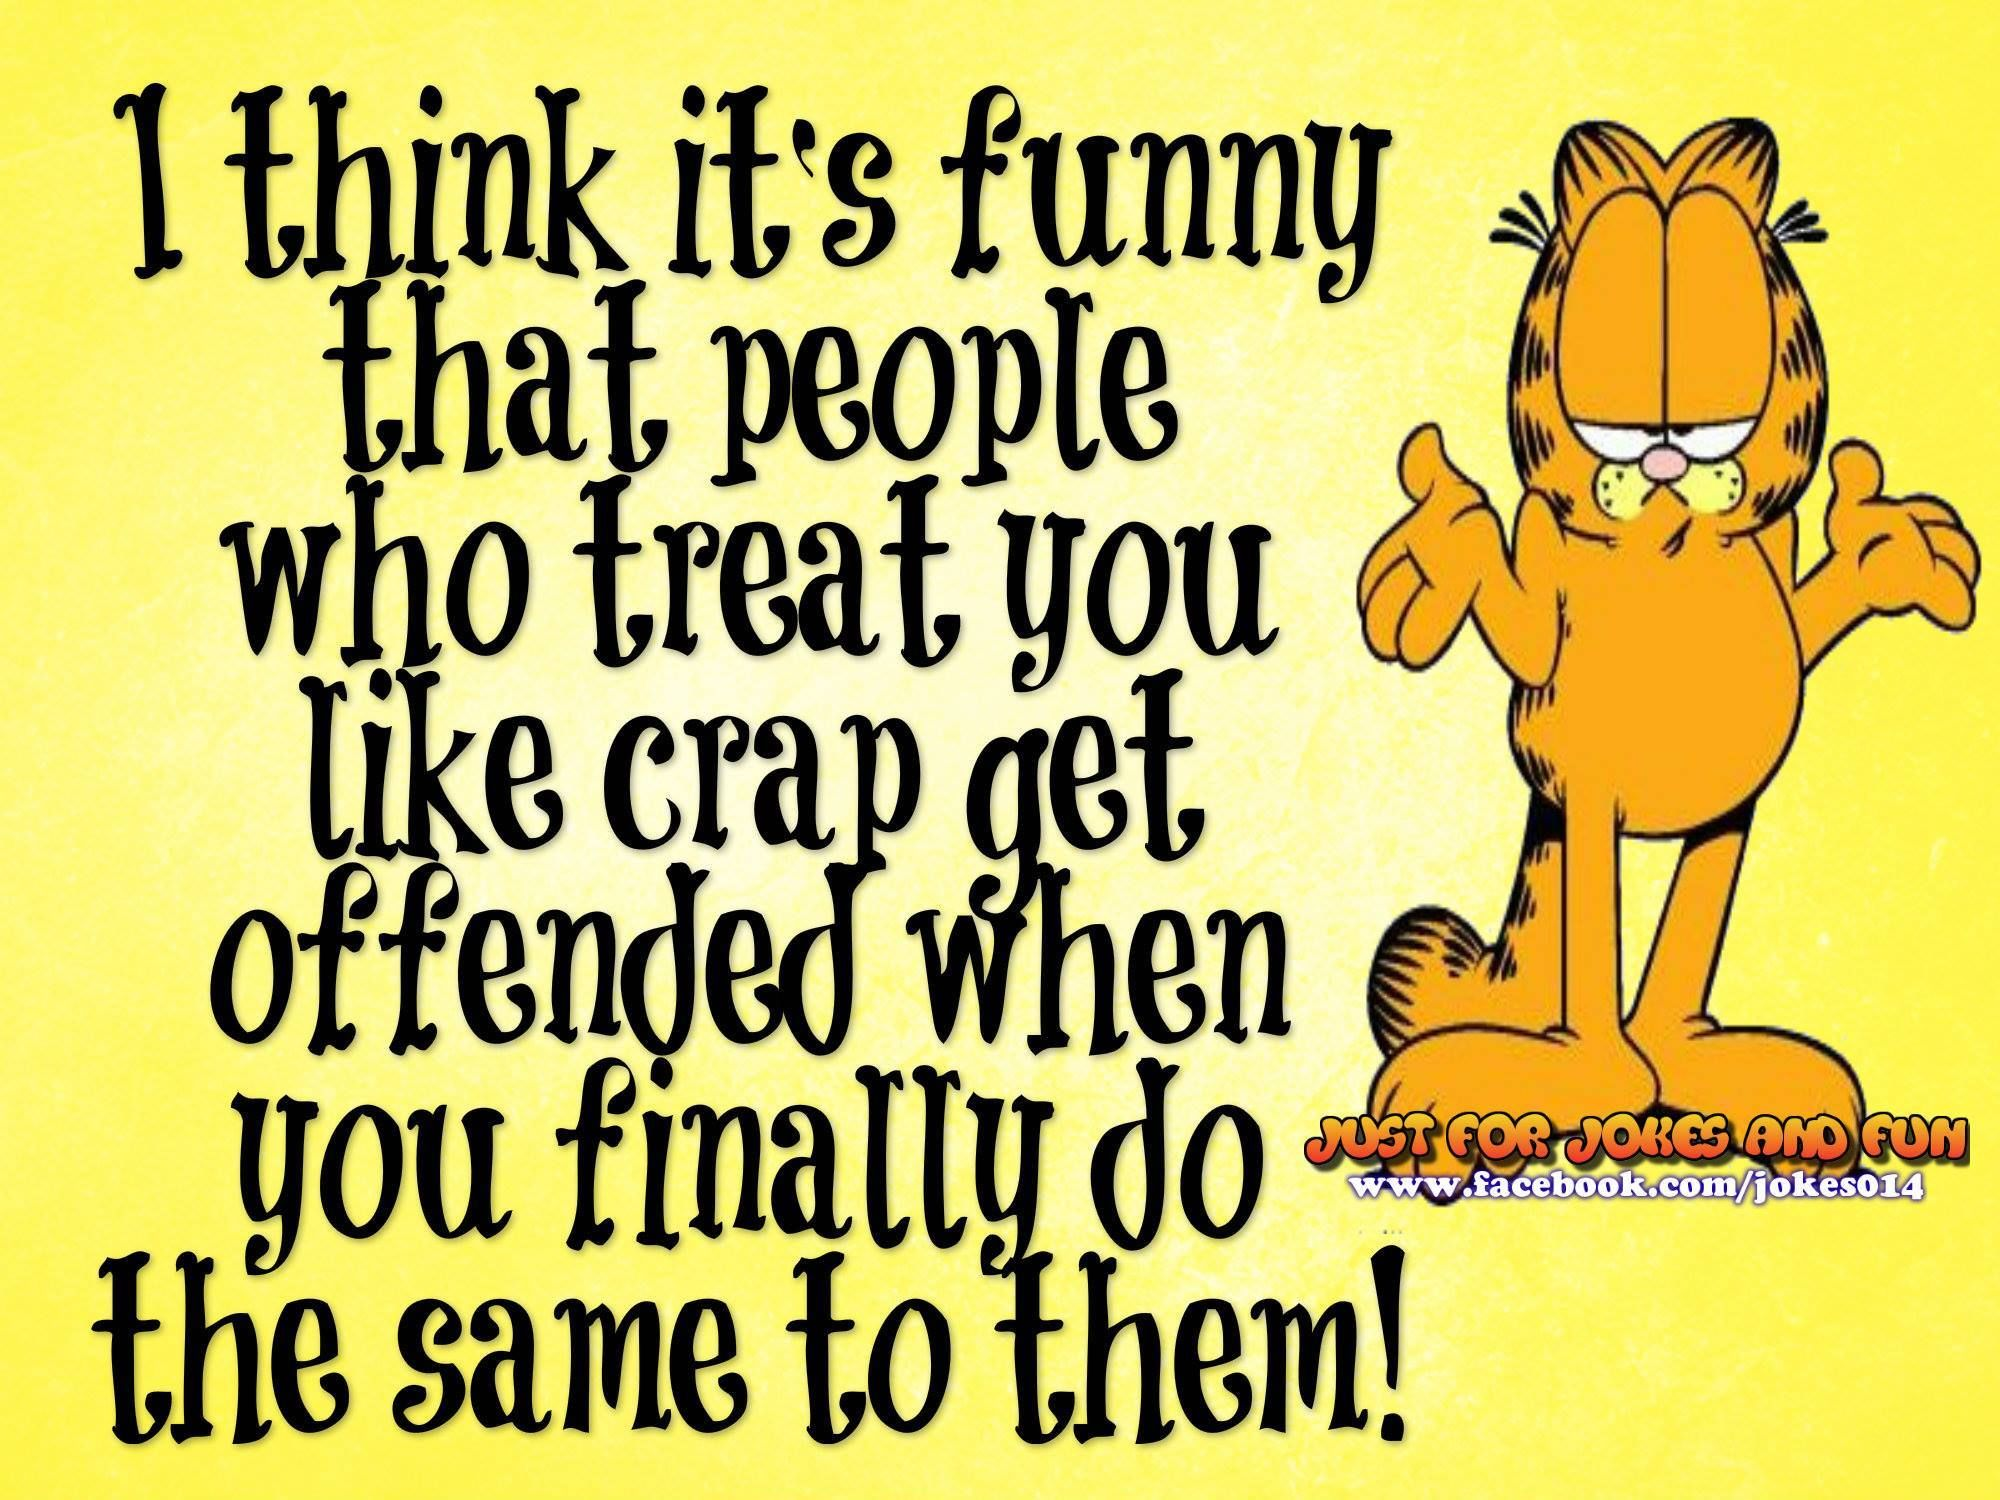 jokes funny cartoon garfield quotes think its sayings joke lol humor hilarious cartoons comic quote lovethispic sarcastic funniest strip thank